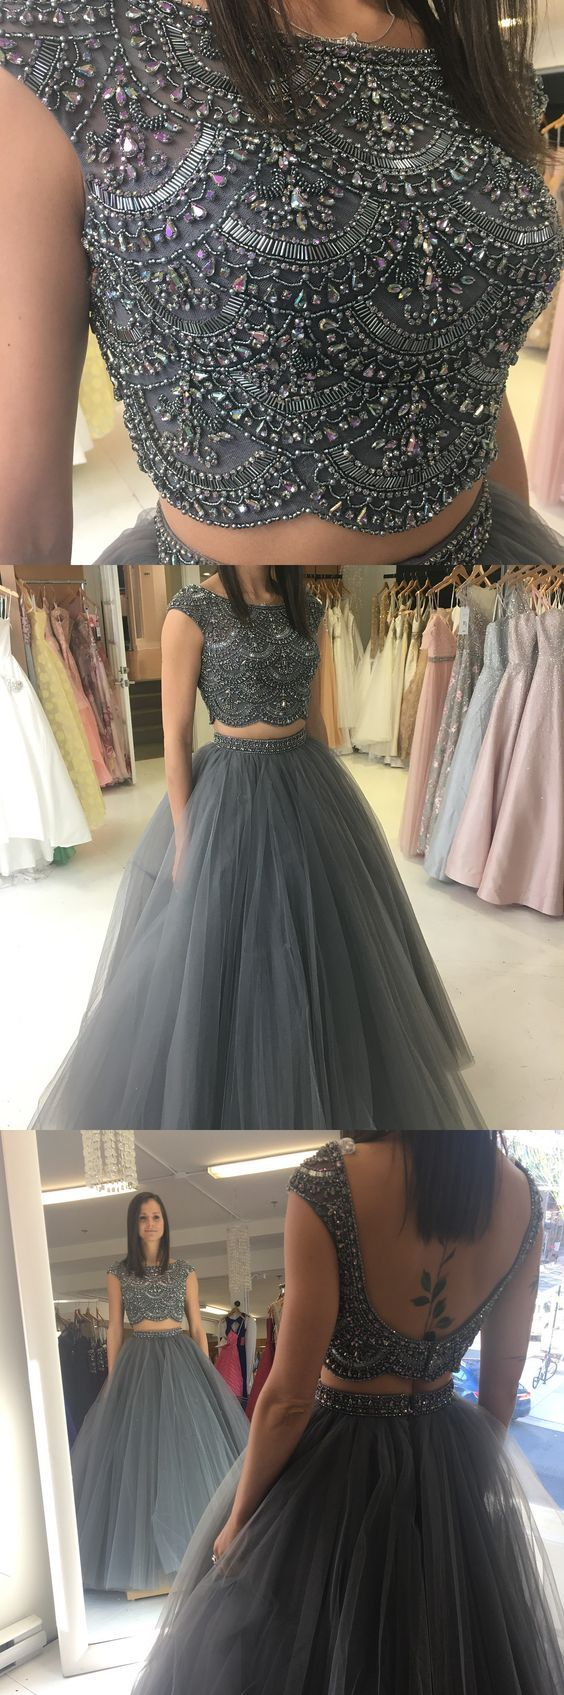 Pin by calista.romhill on Prom   Pinterest   Prom, Ball gowns and Gowns